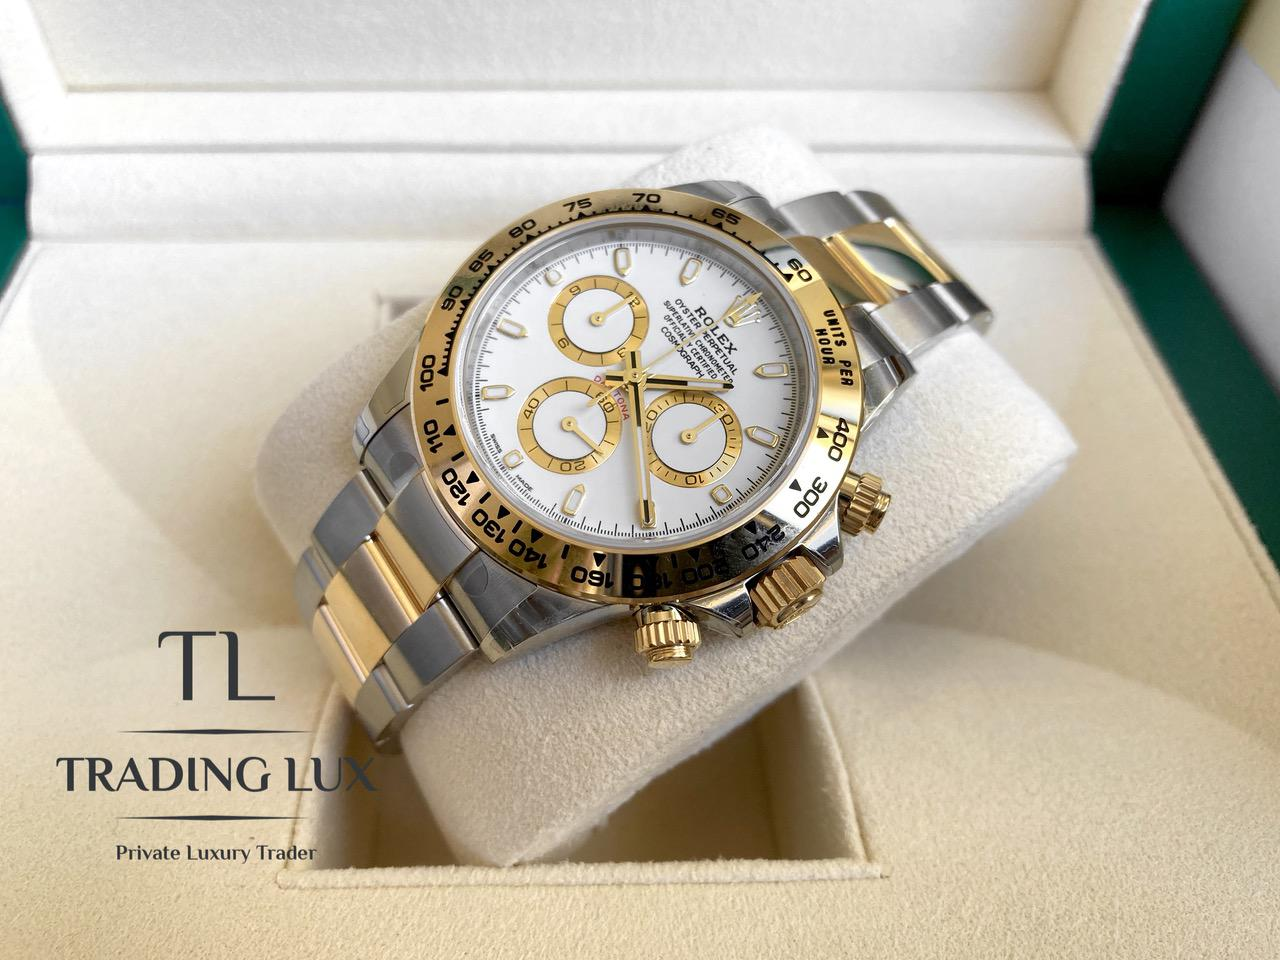 Rolex-Daytona-116503-Gold-Steel-4-1